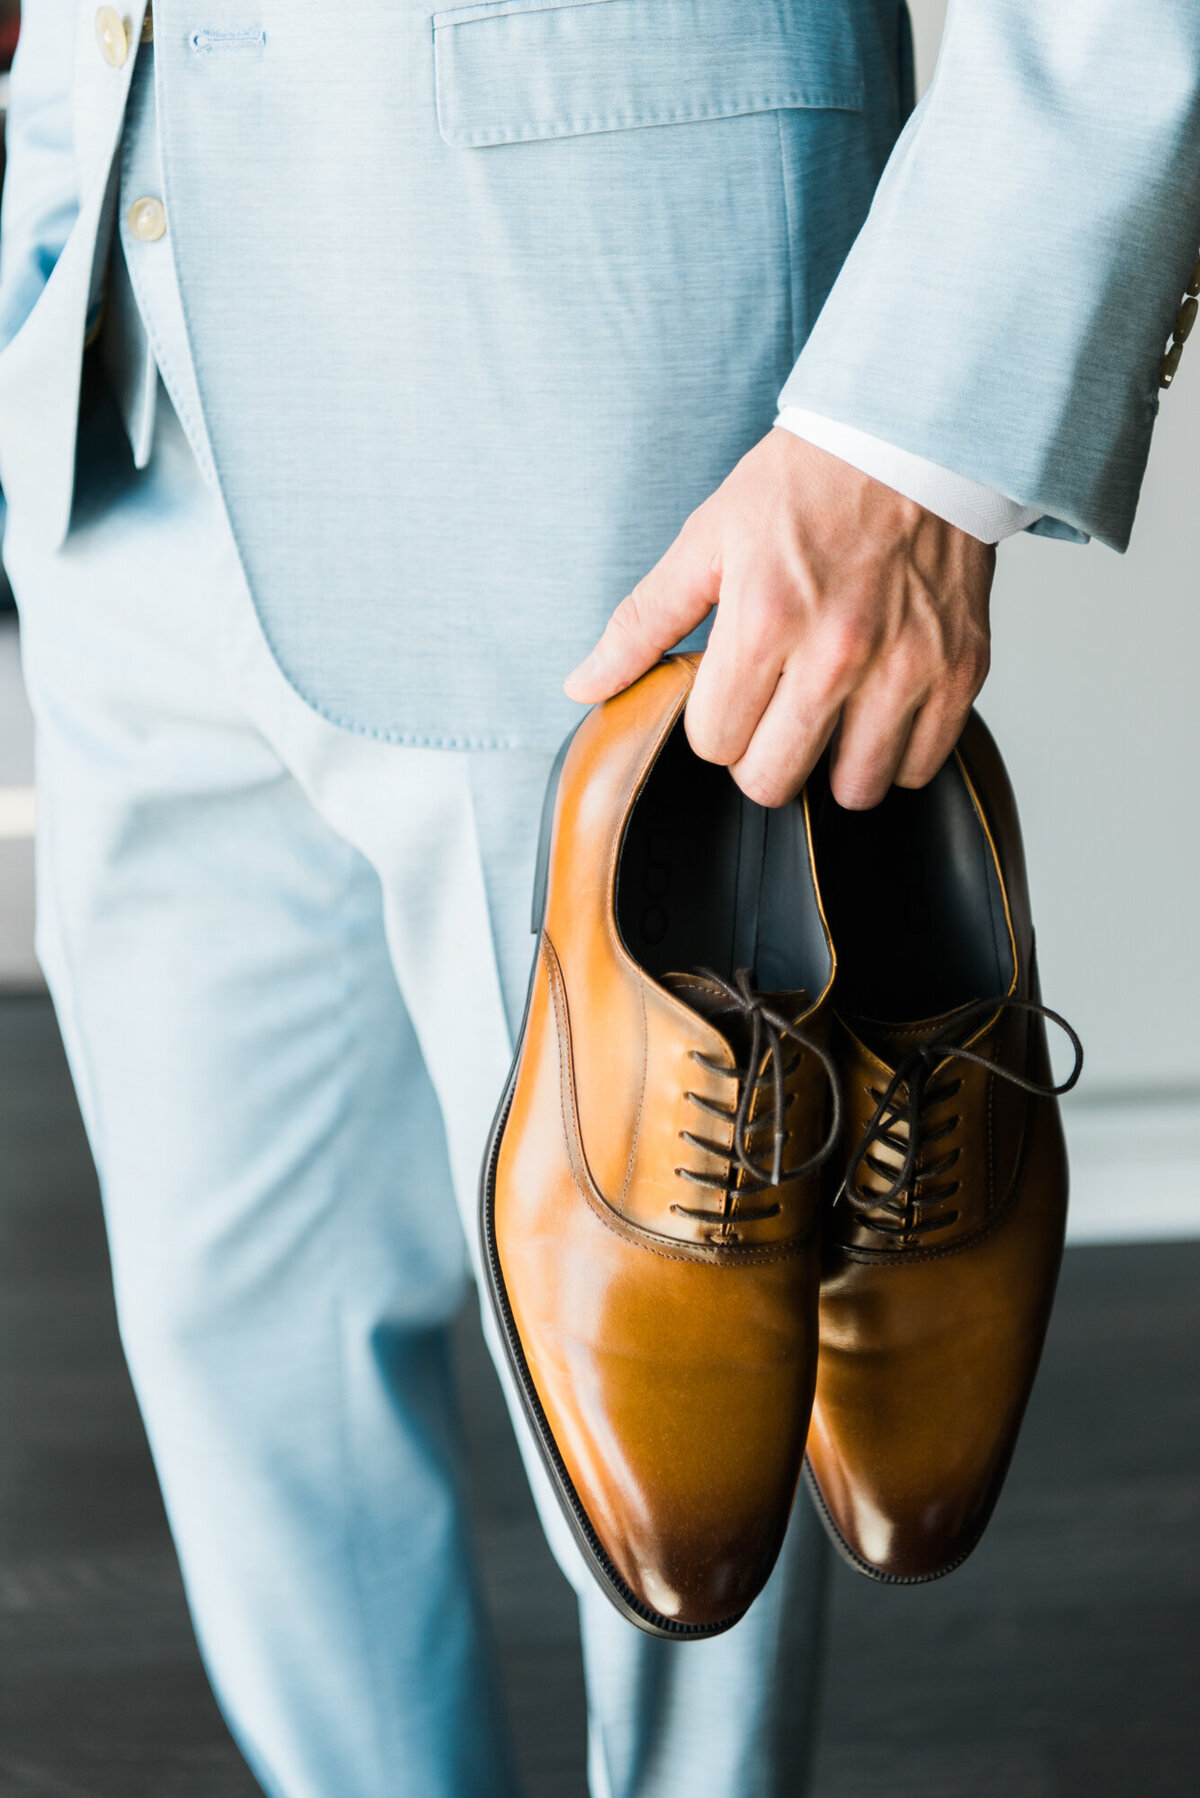 Groom holding brown leather shoes